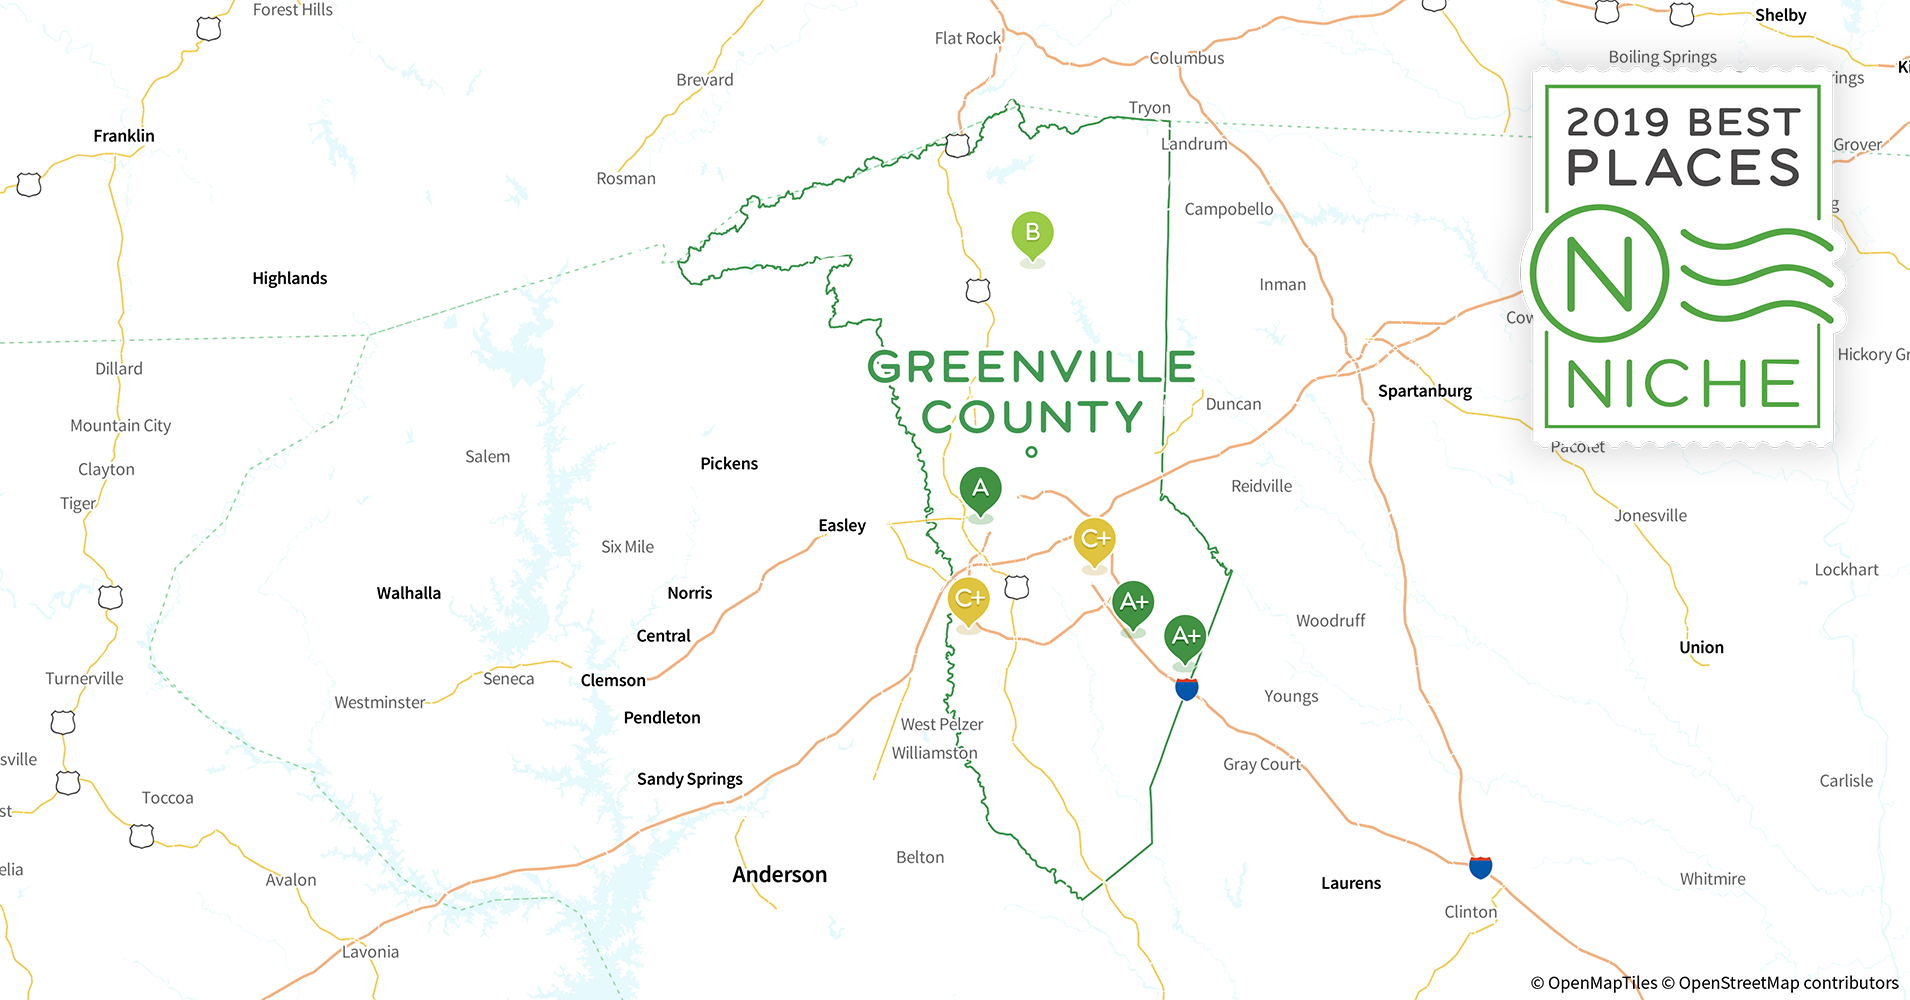 2019 Best Places to Live in Greenville County, SC - Niche Sc Counties Map on tx counties map, al counties map, ma counties map, oh counties map, va counties map, wi counties map, wv counties map, charleston counties map, co counties map, nc counties map, tn counties map, md counties map, ga counties map, ks counties map, wa counties map, ky counties map, ar counties map, fl counties map, il counties map, pa counties map,